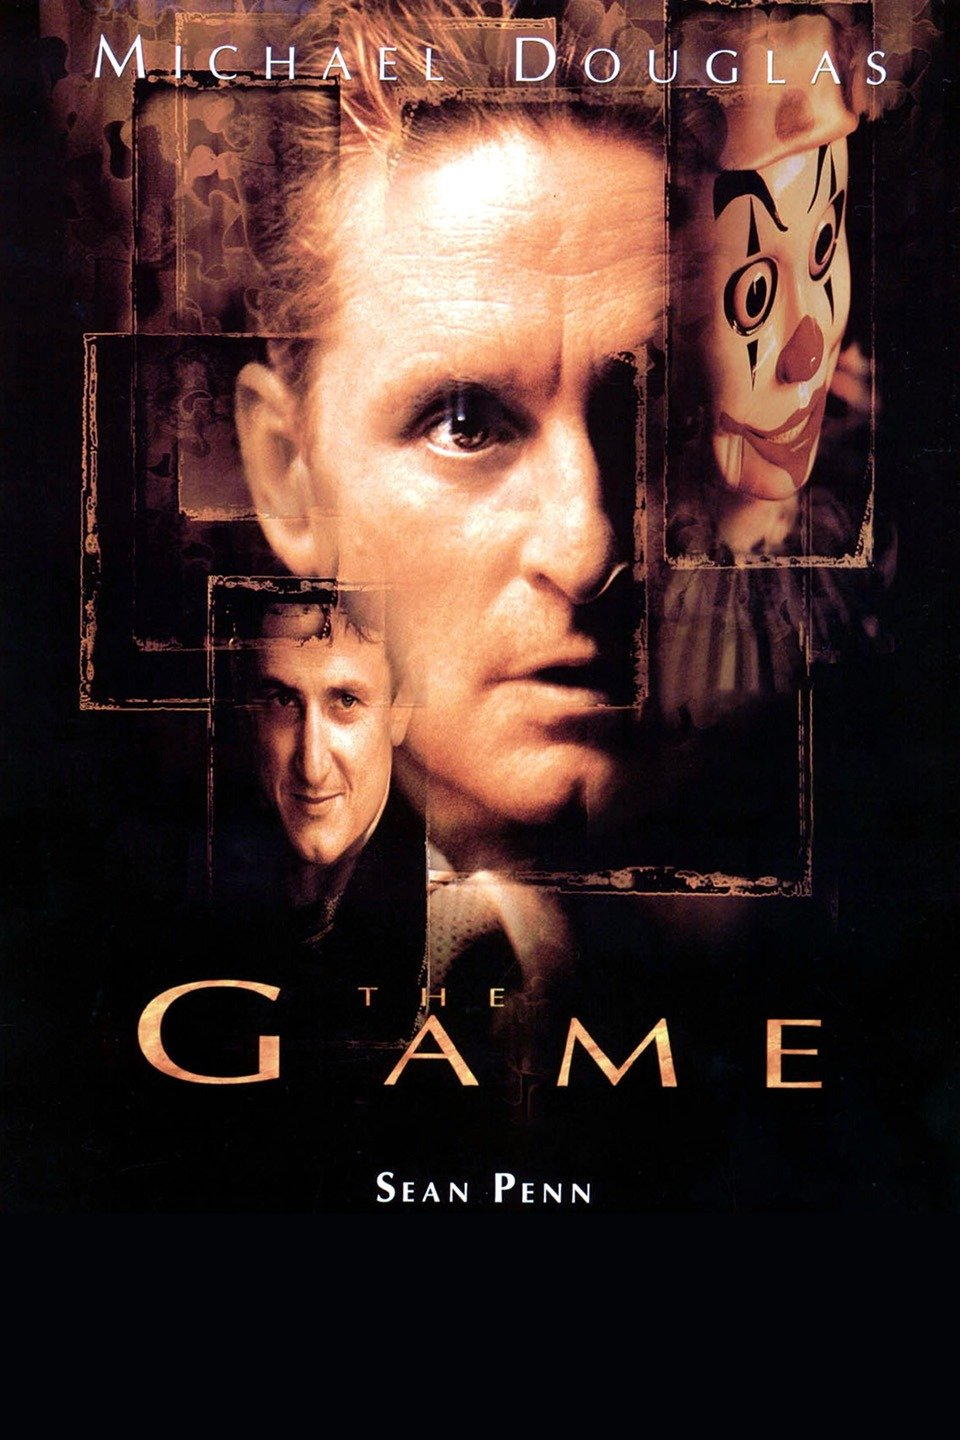 — THE GAME   Nicholas Van Orton (Michael Douglas) is a successful banker who keeps mostly to himself. When his estranged brother Conrad (Sean Penn) returns on his birthday with an odd gift -- participation in a personalized, real-life game -- Nicholas reluctantly accepts. Initially harmless, the game grows increasingly personal, and Orton begins to fear for his life as he eludes agents from the mysterious game's organizers. With no one left to trust and his money gone, Orton must find answers for himself.